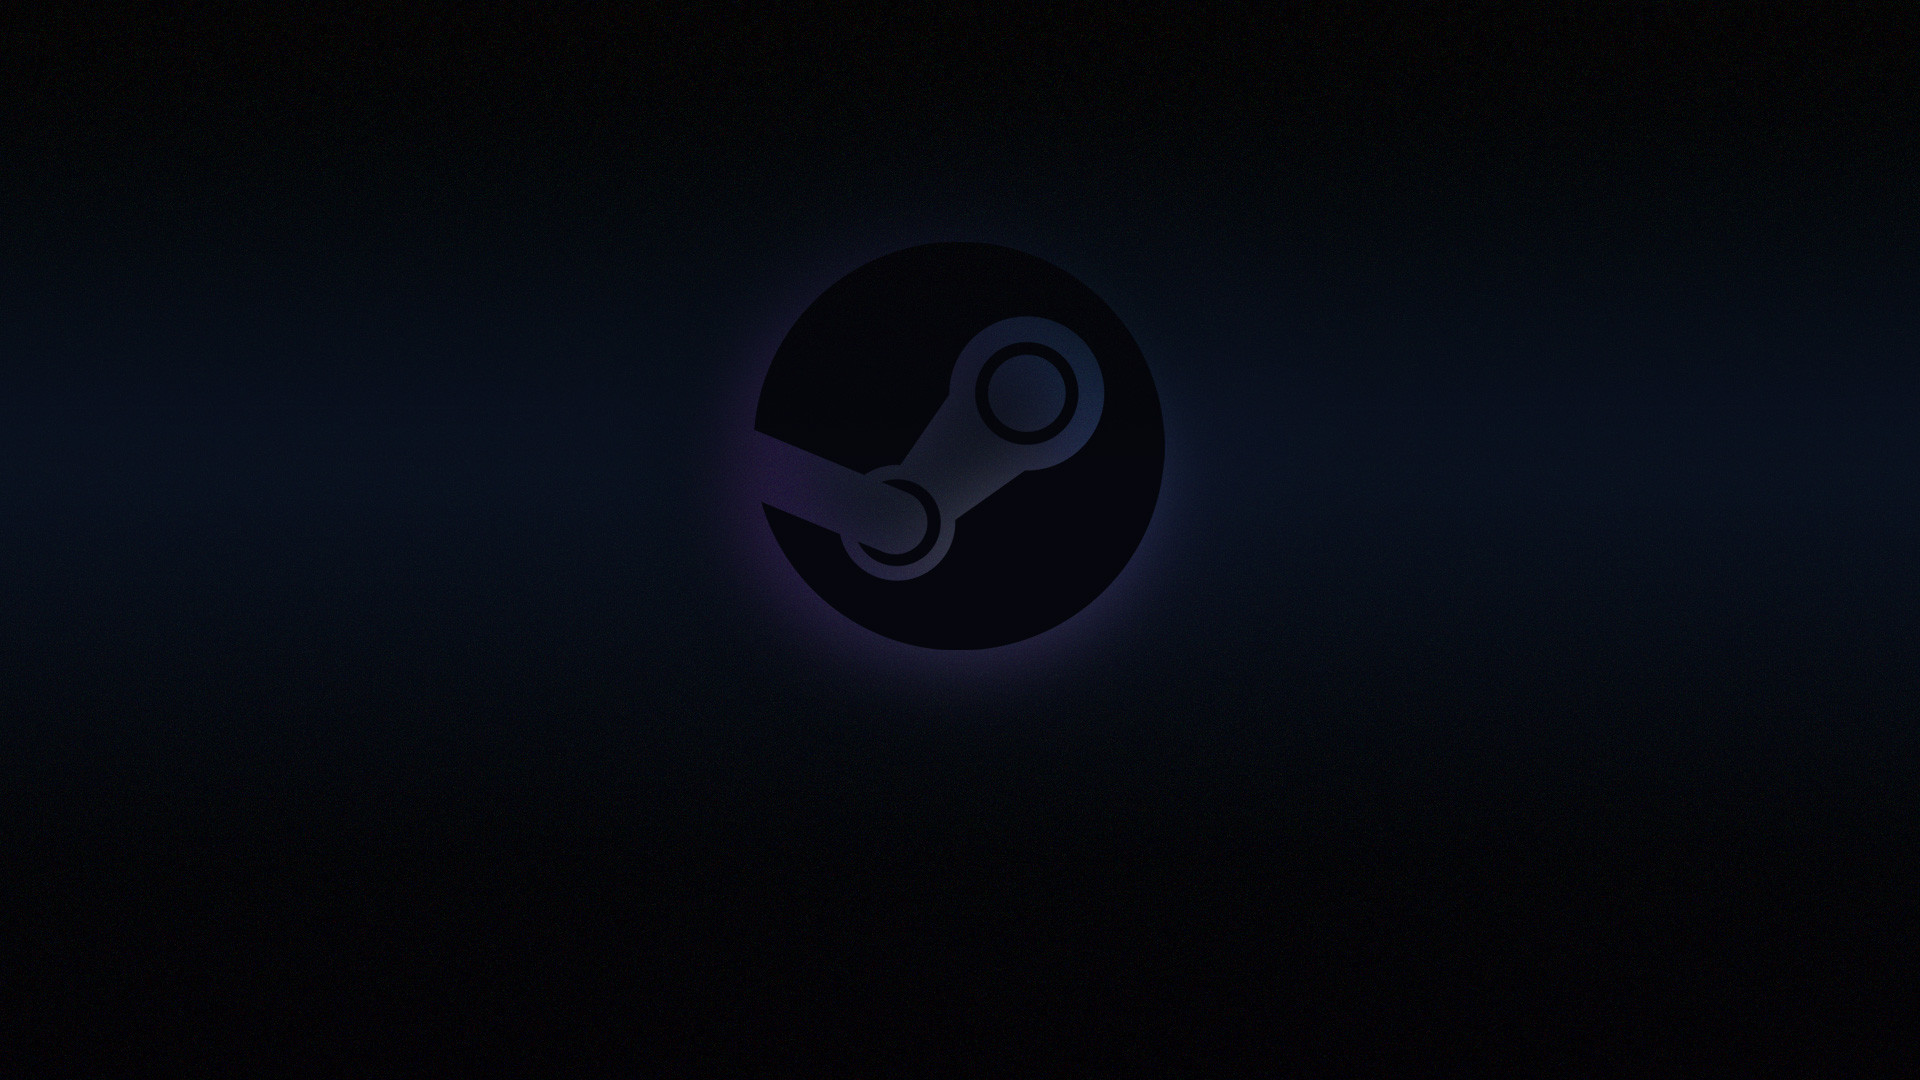 steam background how to get